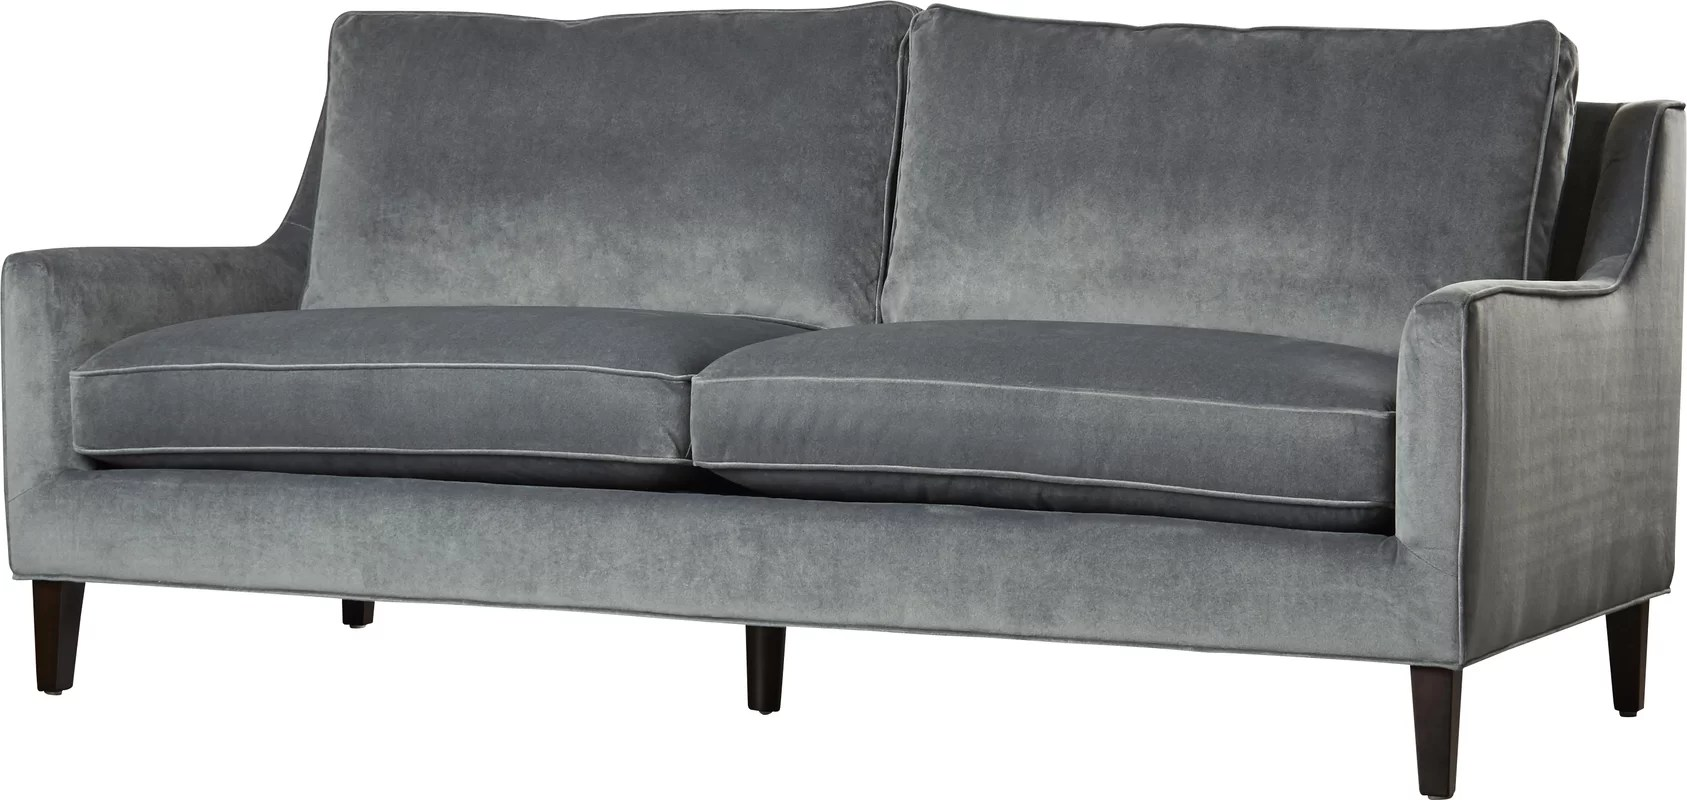 Hanover Sofa Review Www Gradschoolfairs Com